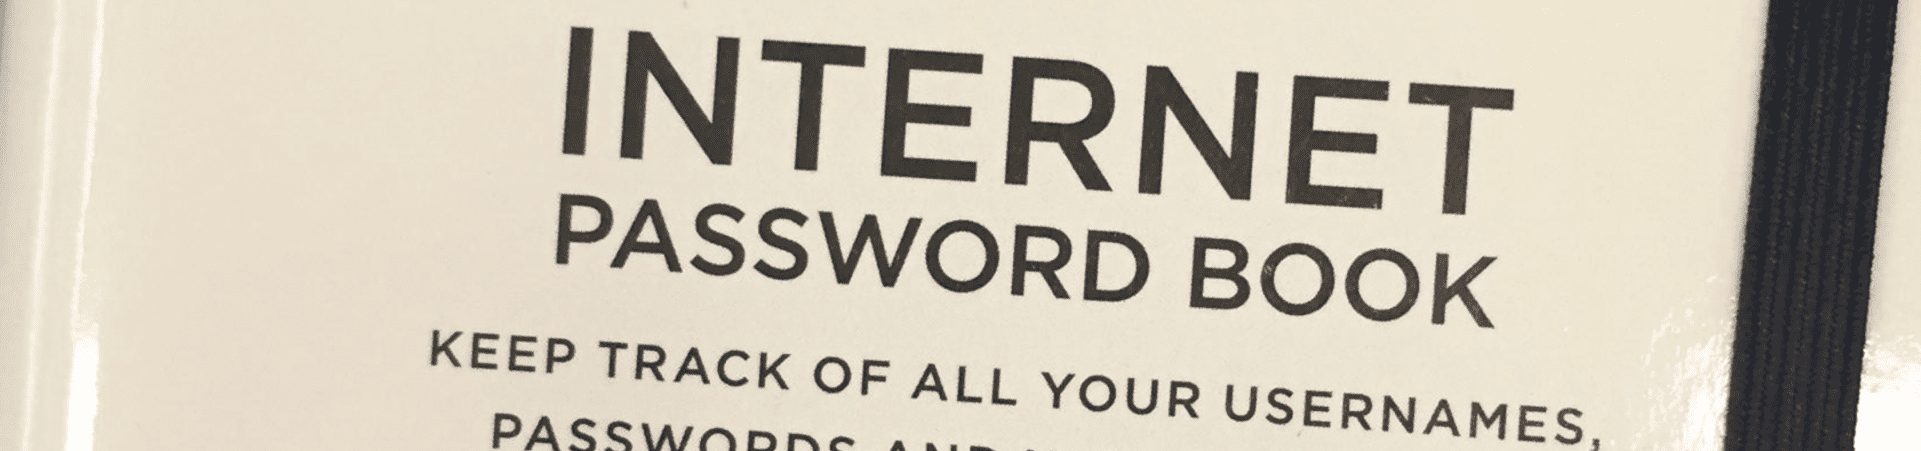 cyber security and internet passwords